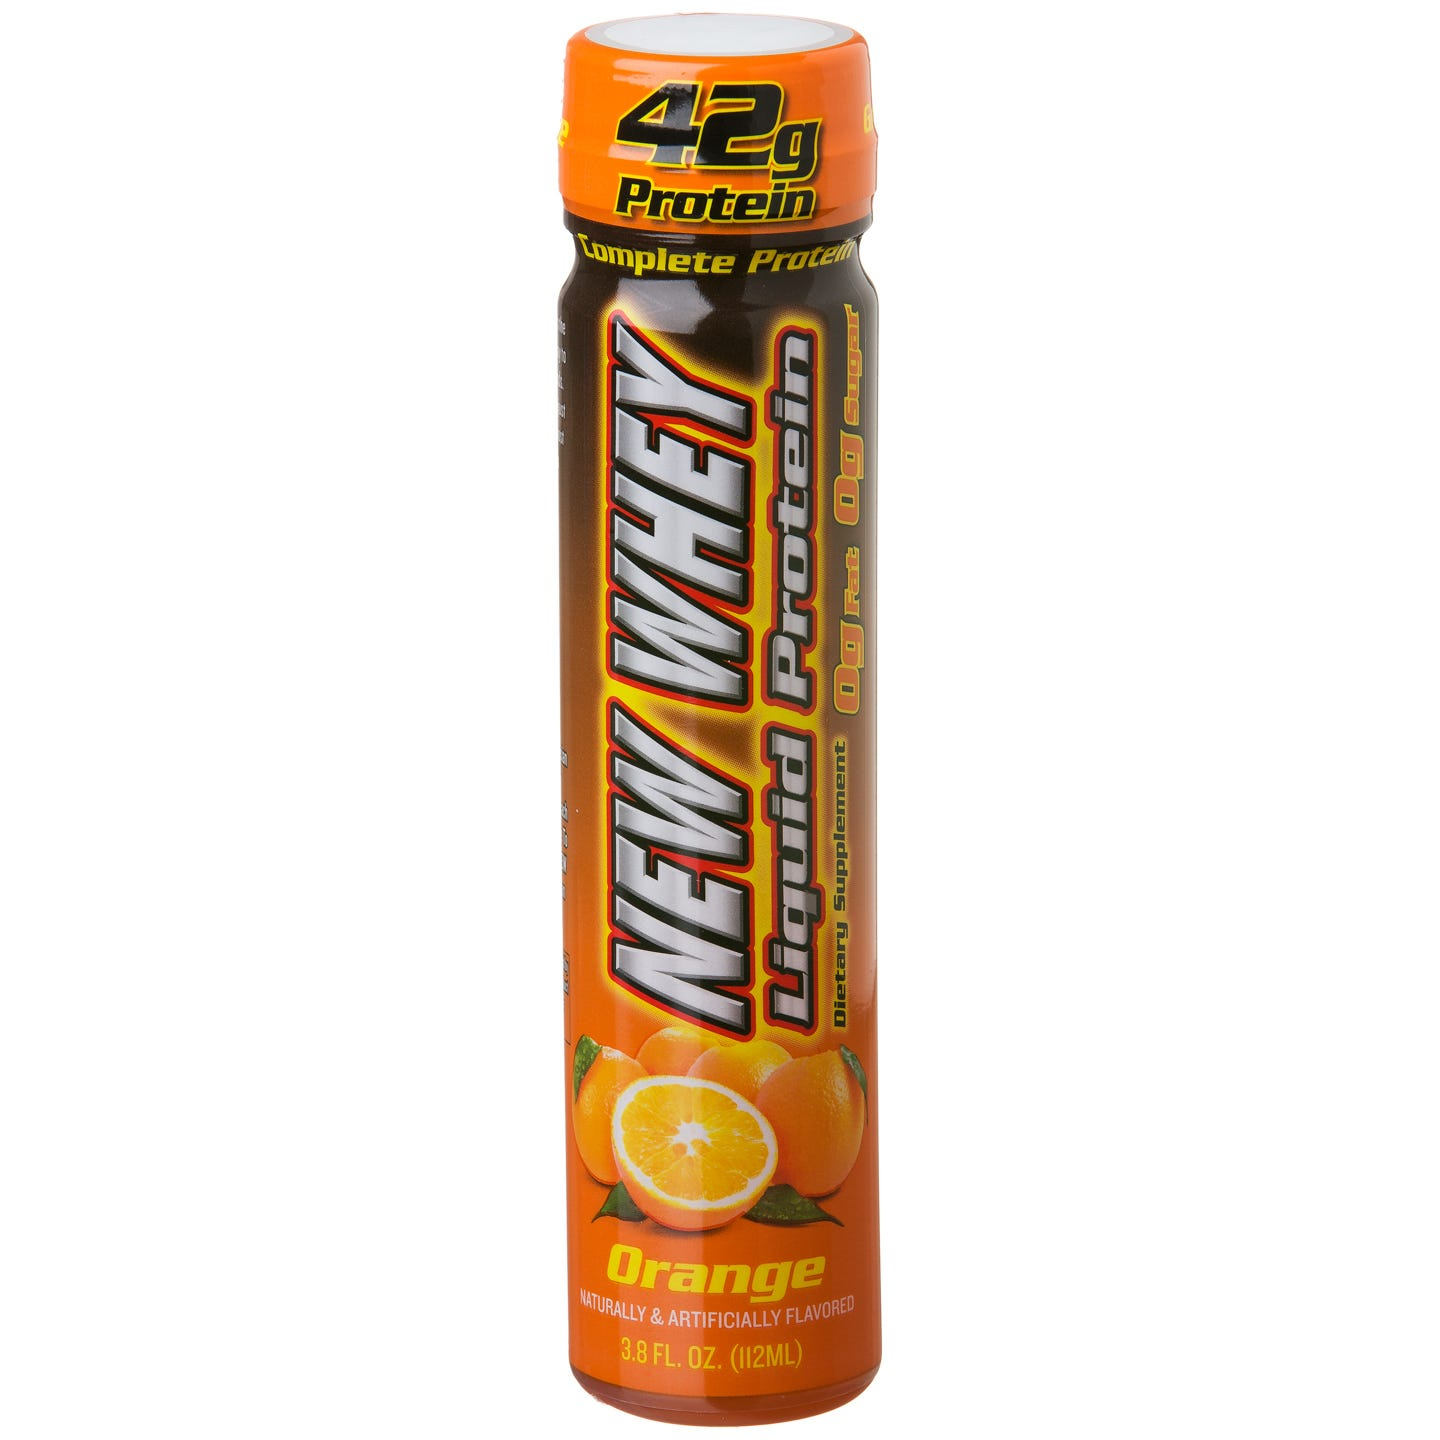 IDS New-Whey Liquid Protein, 42 g Protein - Orange